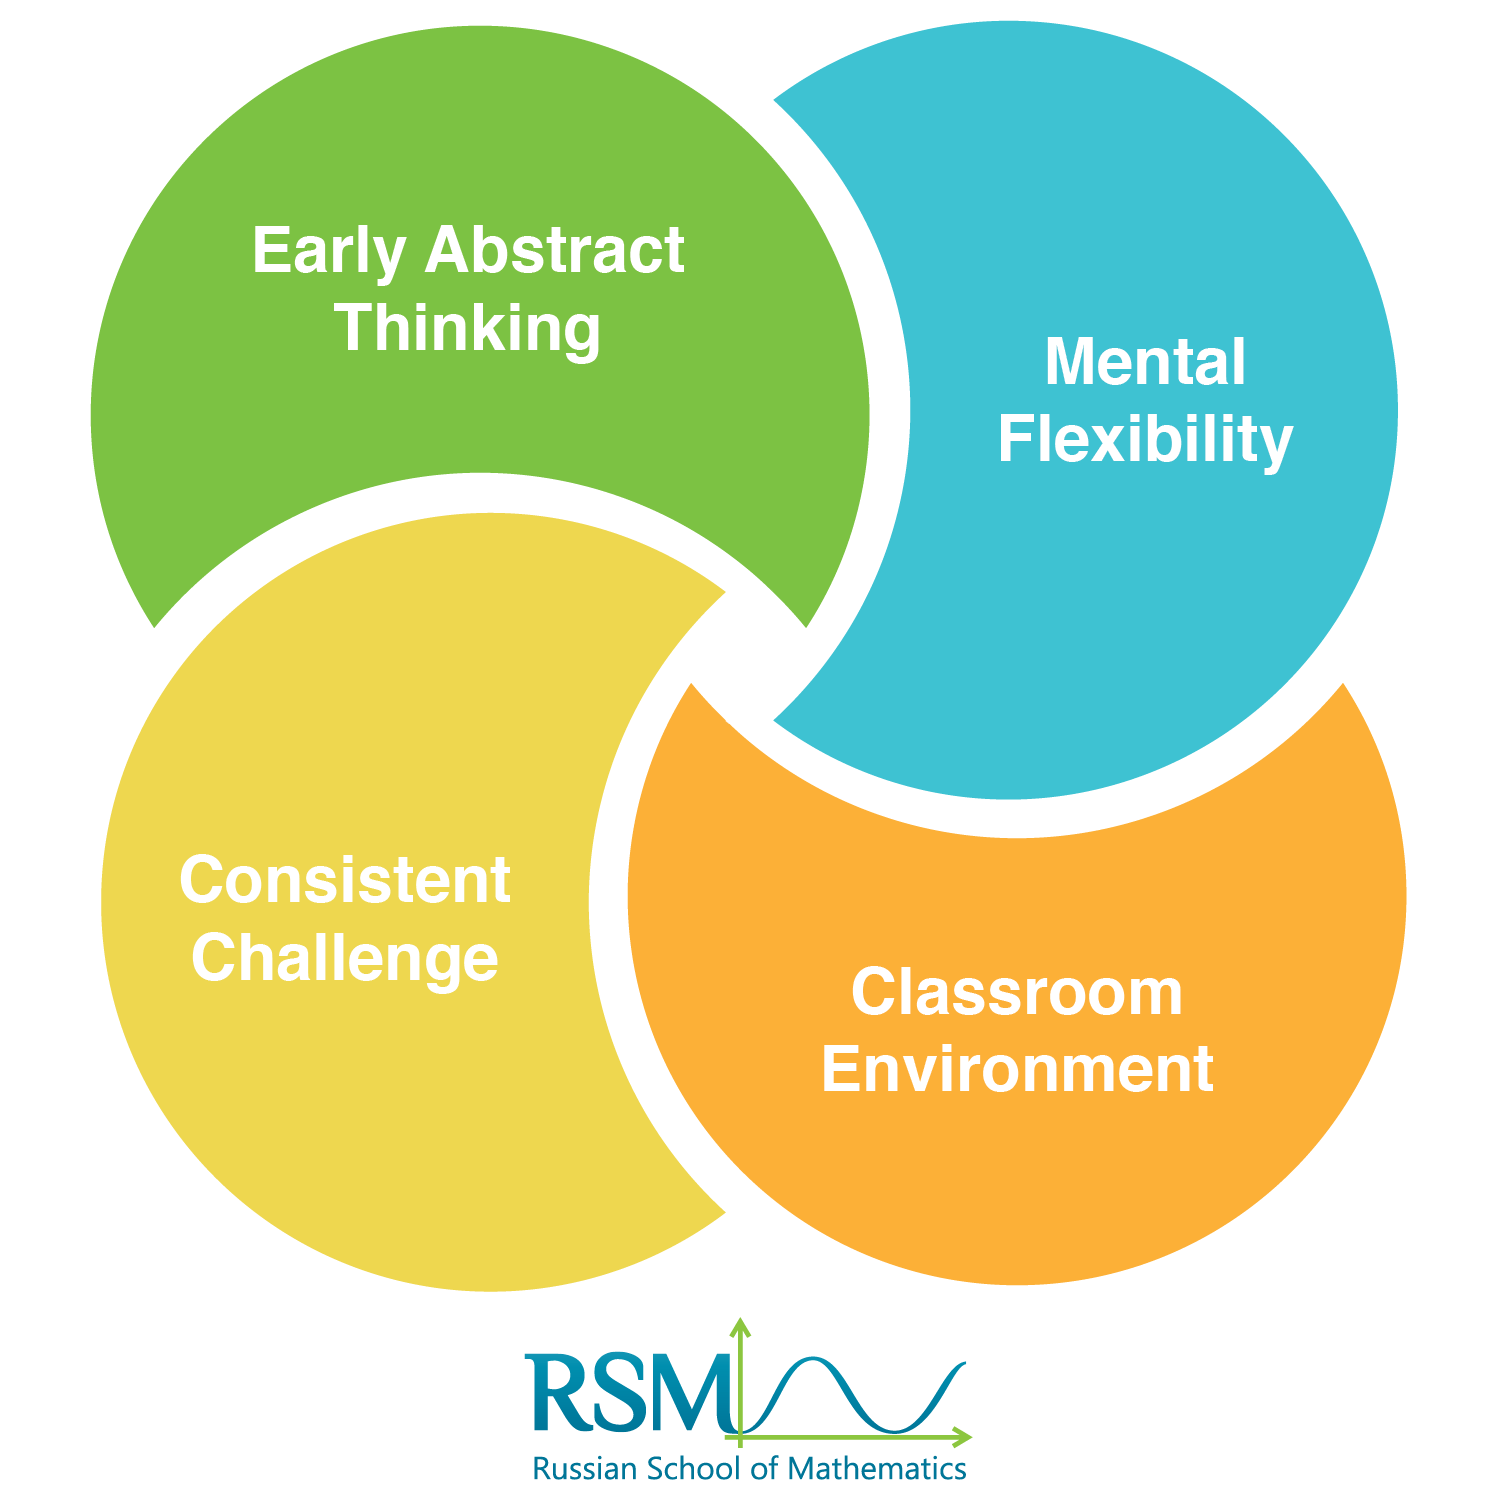 Venn diagram showing how the RSM Math Programs blend Early Abstract Thinking, Mental Flexibility, Consistent Challenges, and Classroom Environment